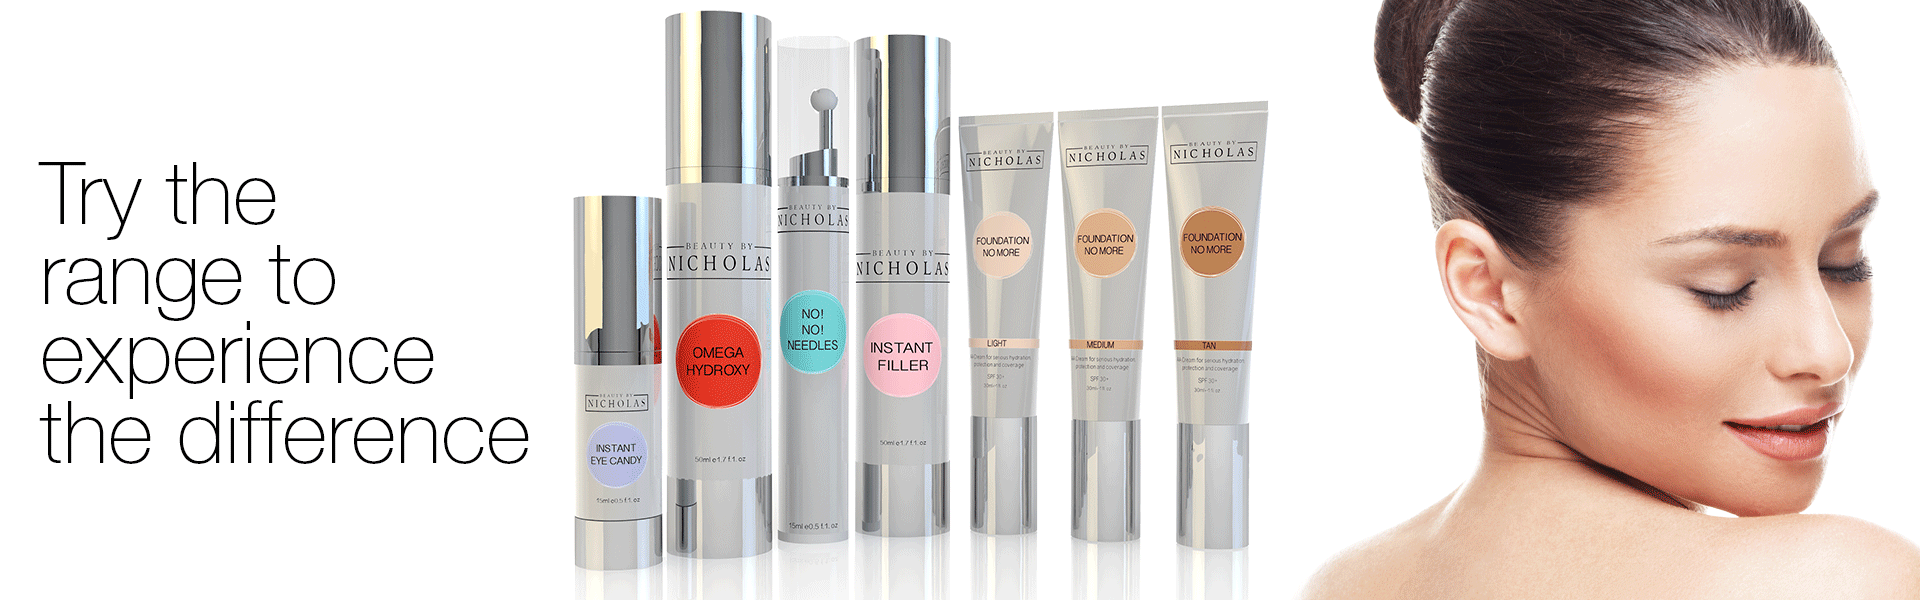 advanced anti-ageing advanced skincare formulations by Beauty By Nicholas